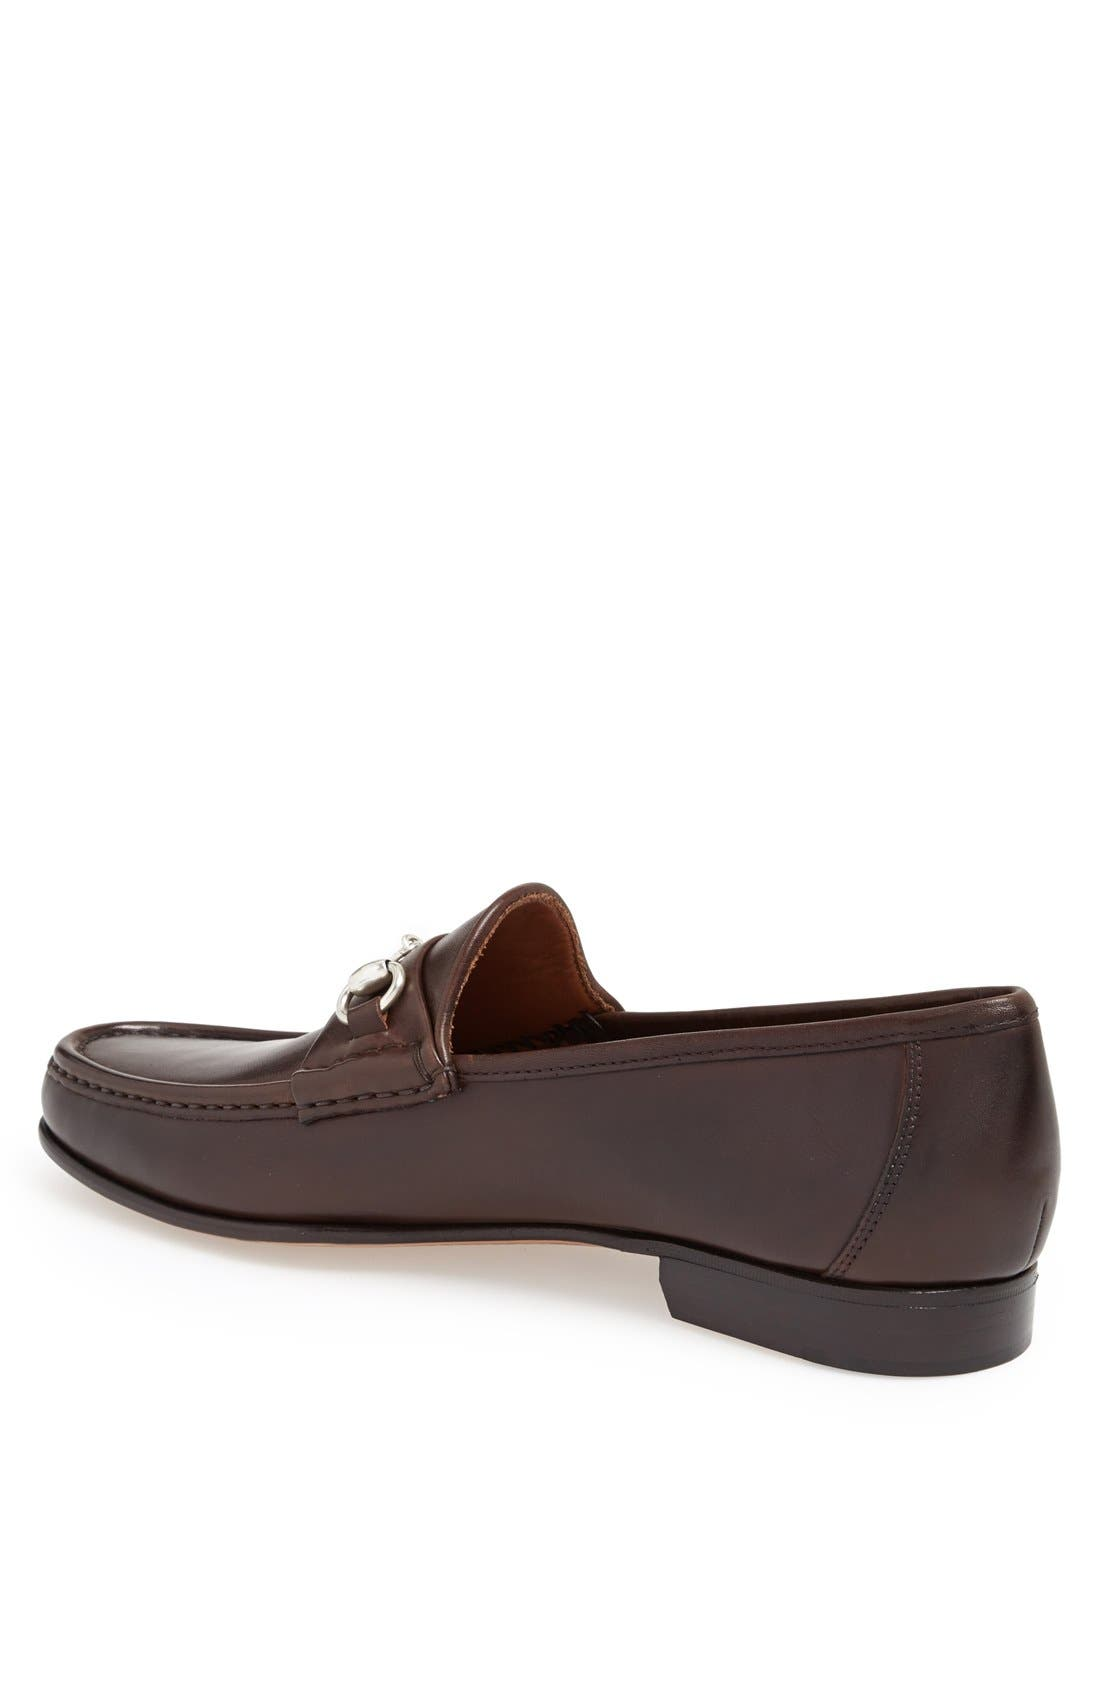 Verona II Bit Loafer,                             Alternate thumbnail 2, color,                             Brown/ Brown